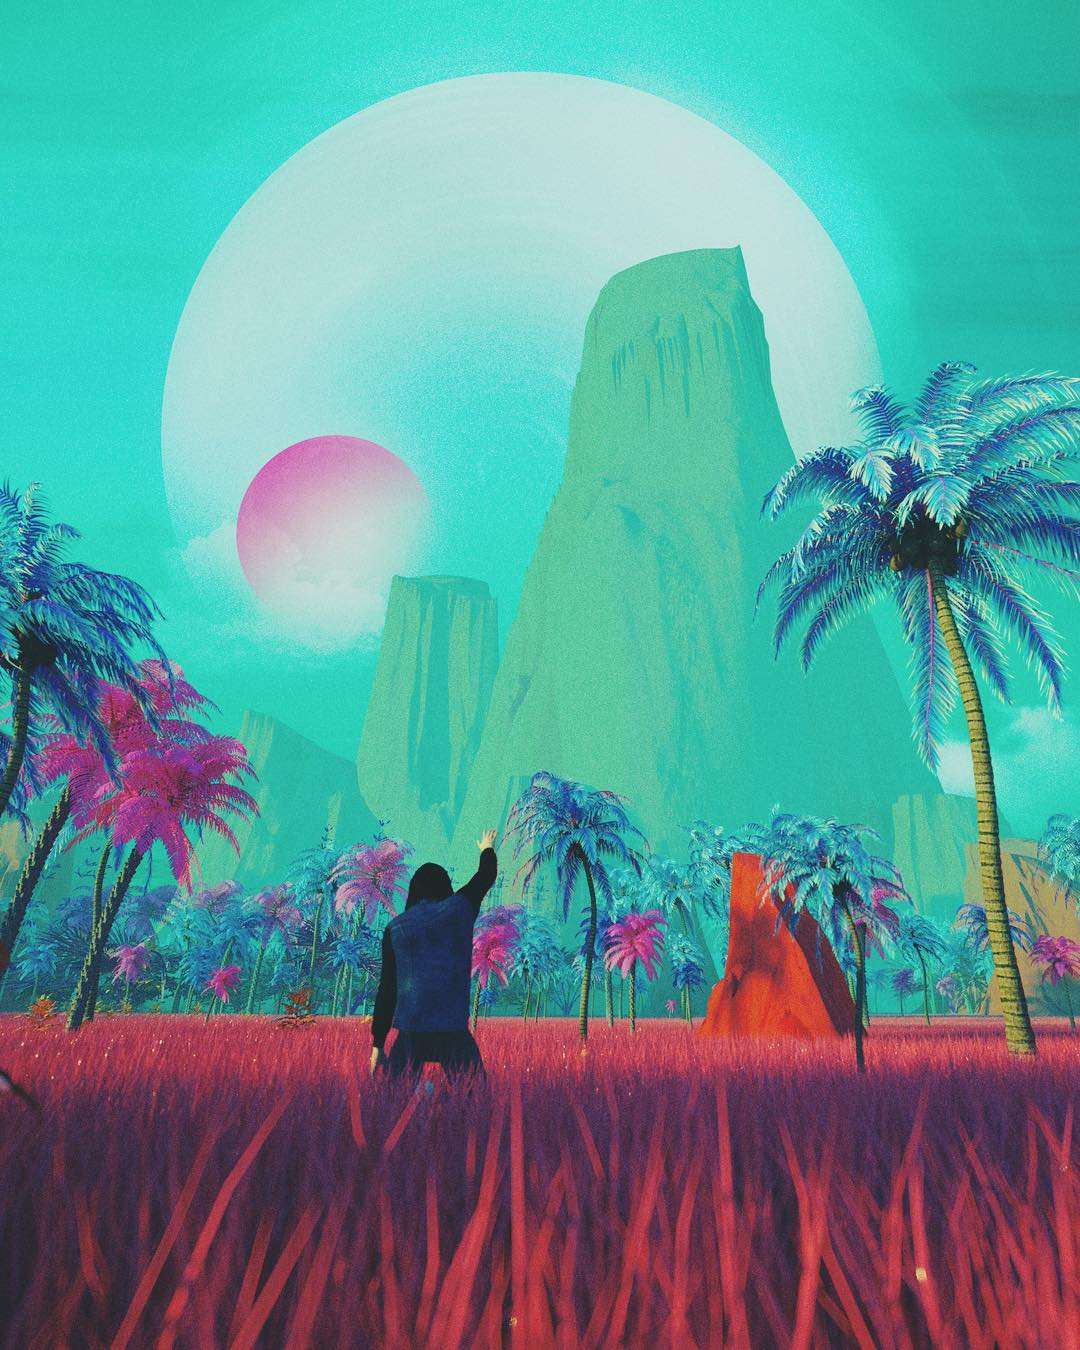 L'art digital 3D de Mike Winkelmann aka Beeple - MAJ Edition